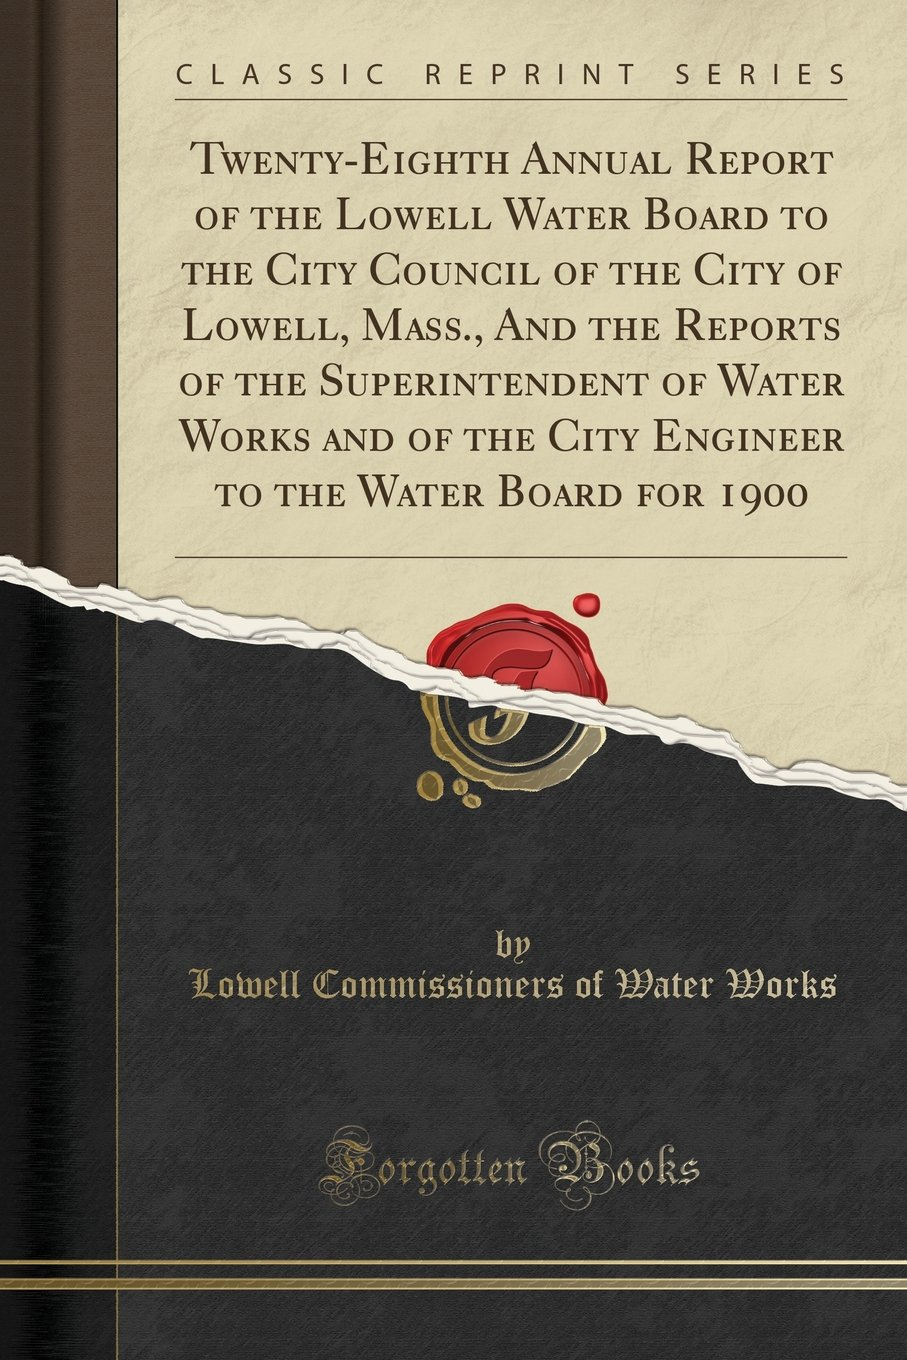 Twenty-Eighth Annual Report of the Lowell Water Board to the City Council of the City of Lowell, Mass., And the Reports of the Superintendent of Water ... to the Water Board for 1900 (Classic Reprint) PDF Text fb2 ebook